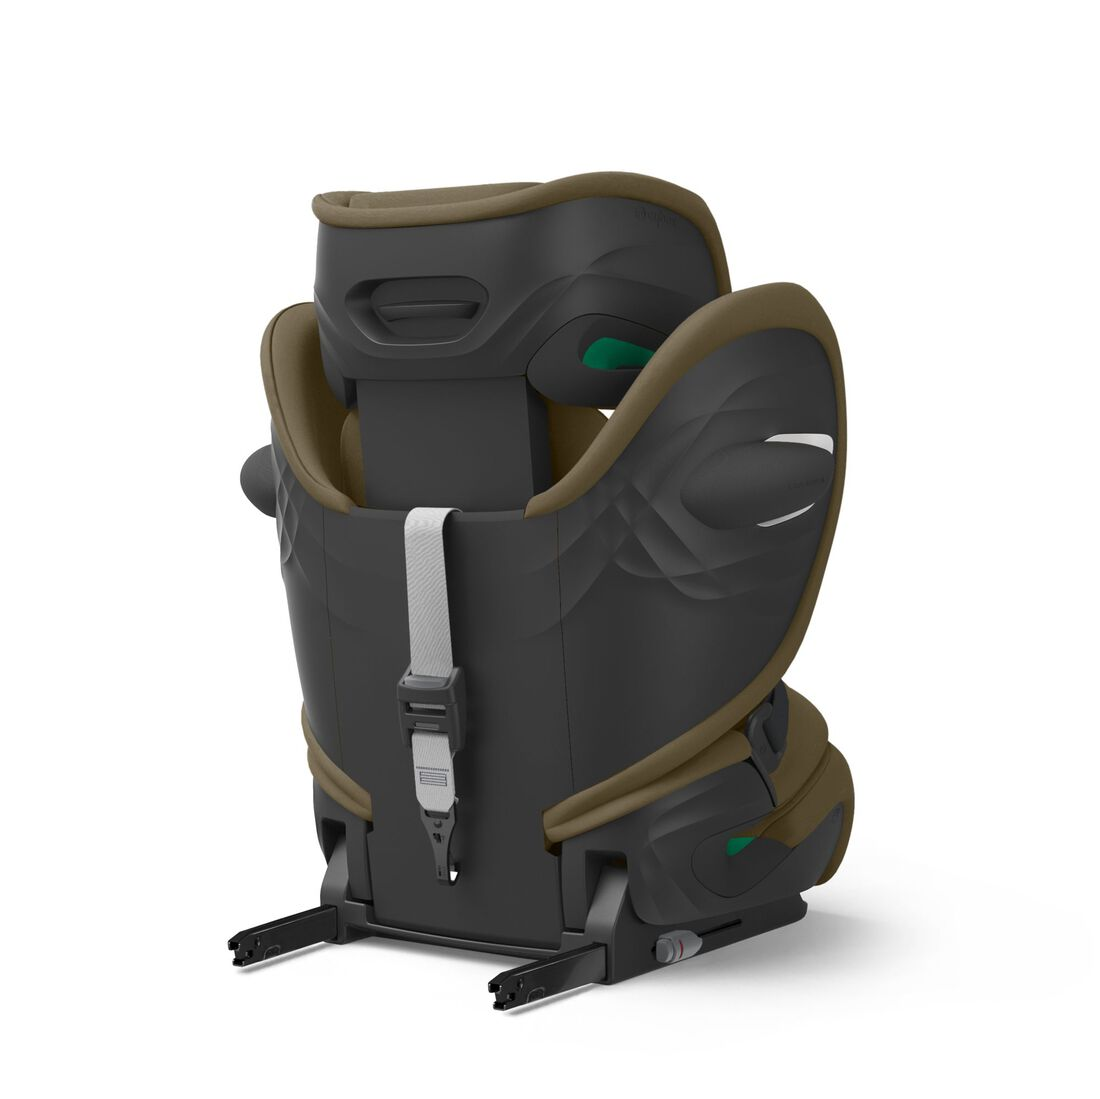 CYBEX Pallas G i-Size - Classic Beige in Classic Beige large image number 5